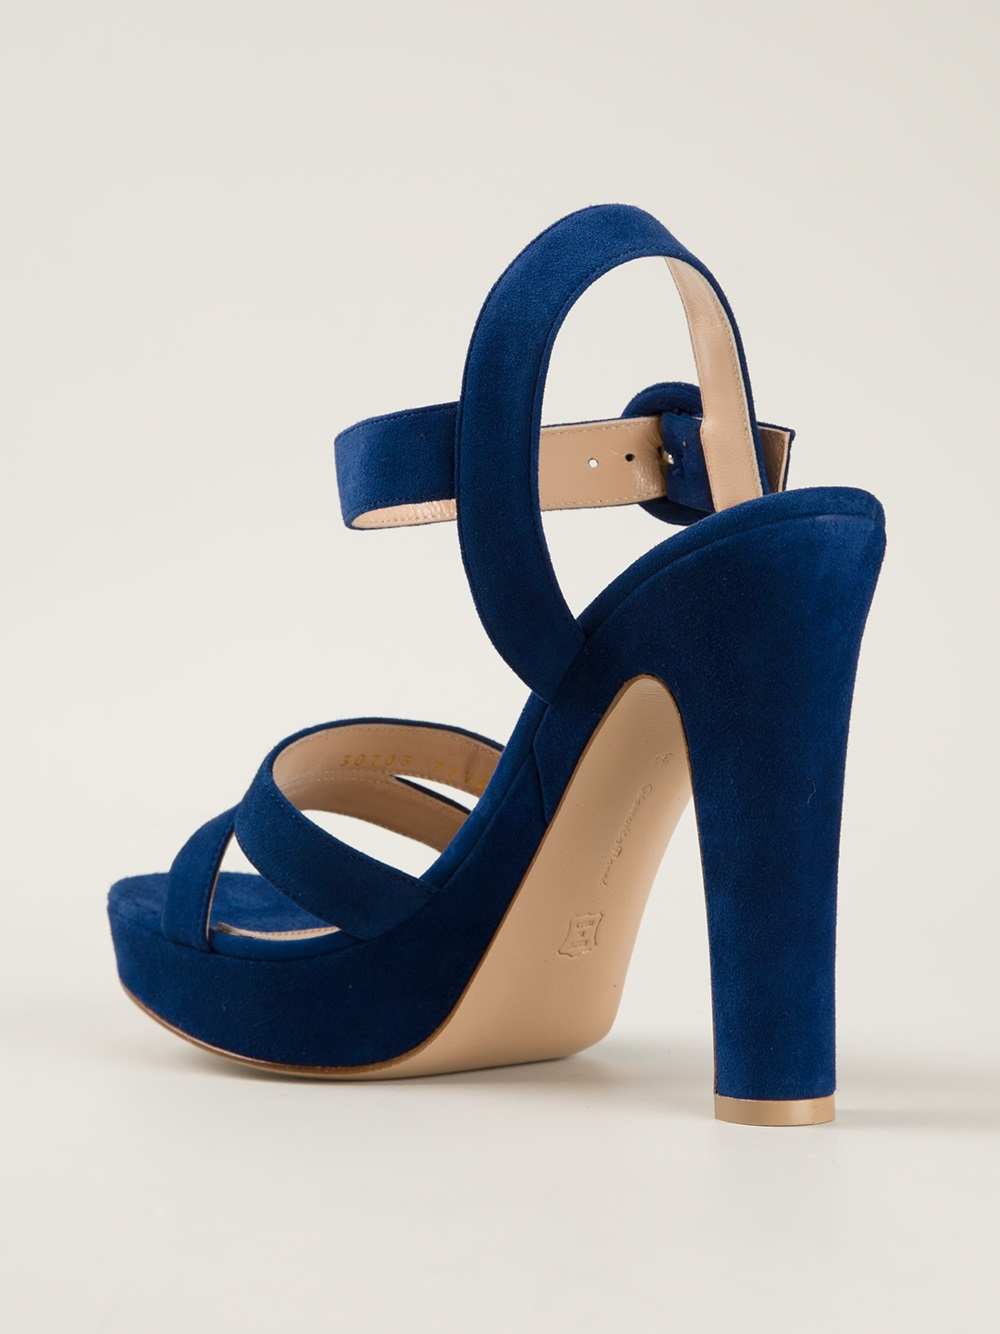 Gianvito rossi Chunky Heel Sandals in Blue | Lyst